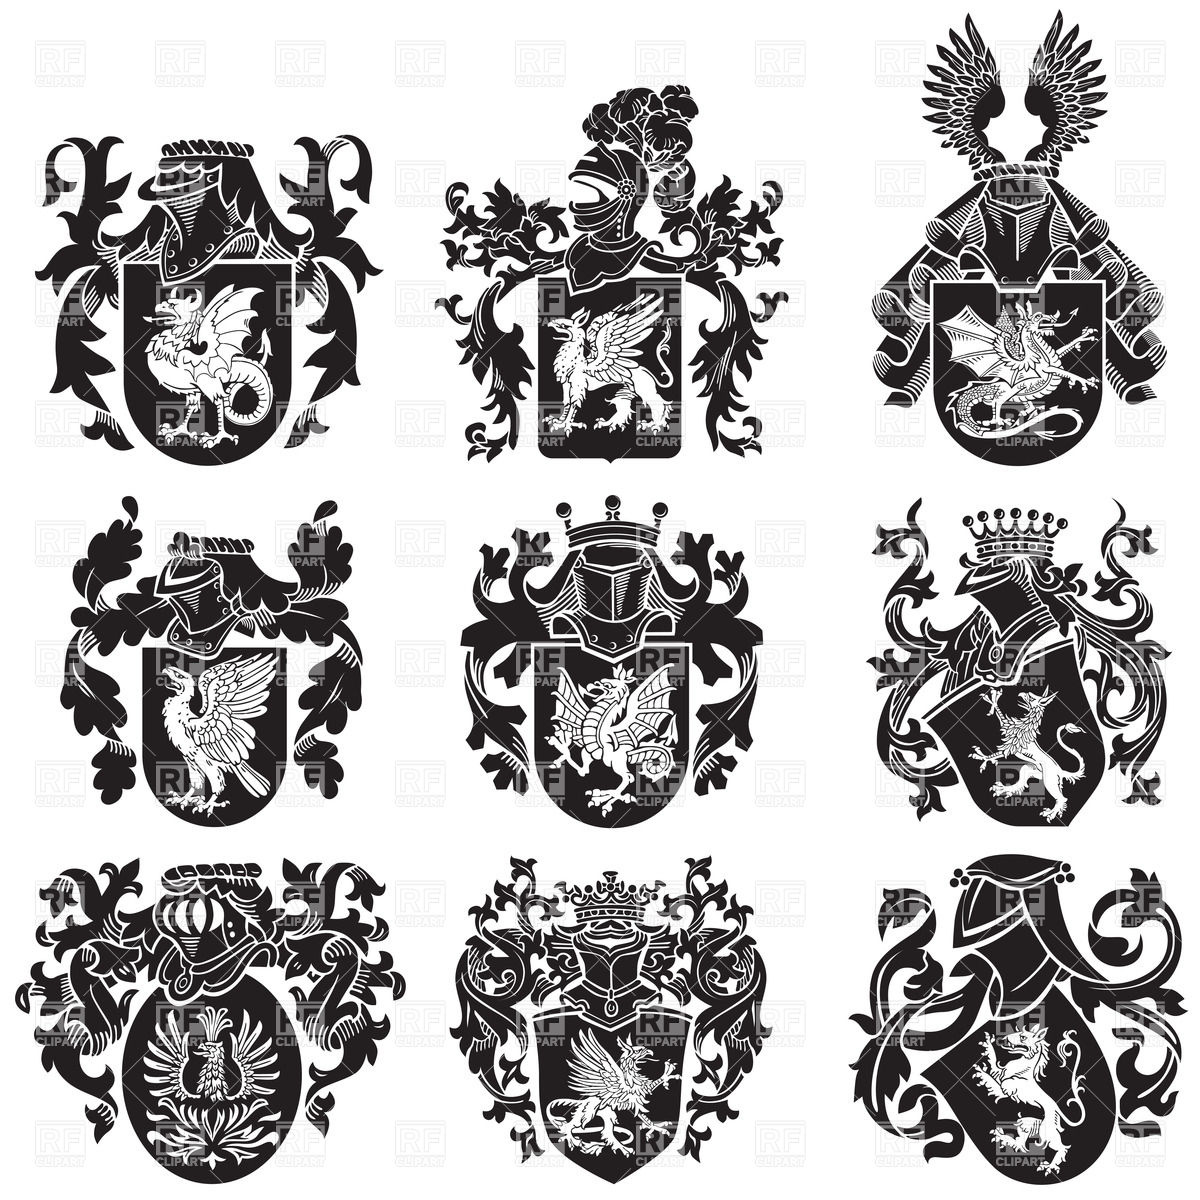 1200x1200 Medieval Heraldic Coat Of Arms With Mythological Animals Vector